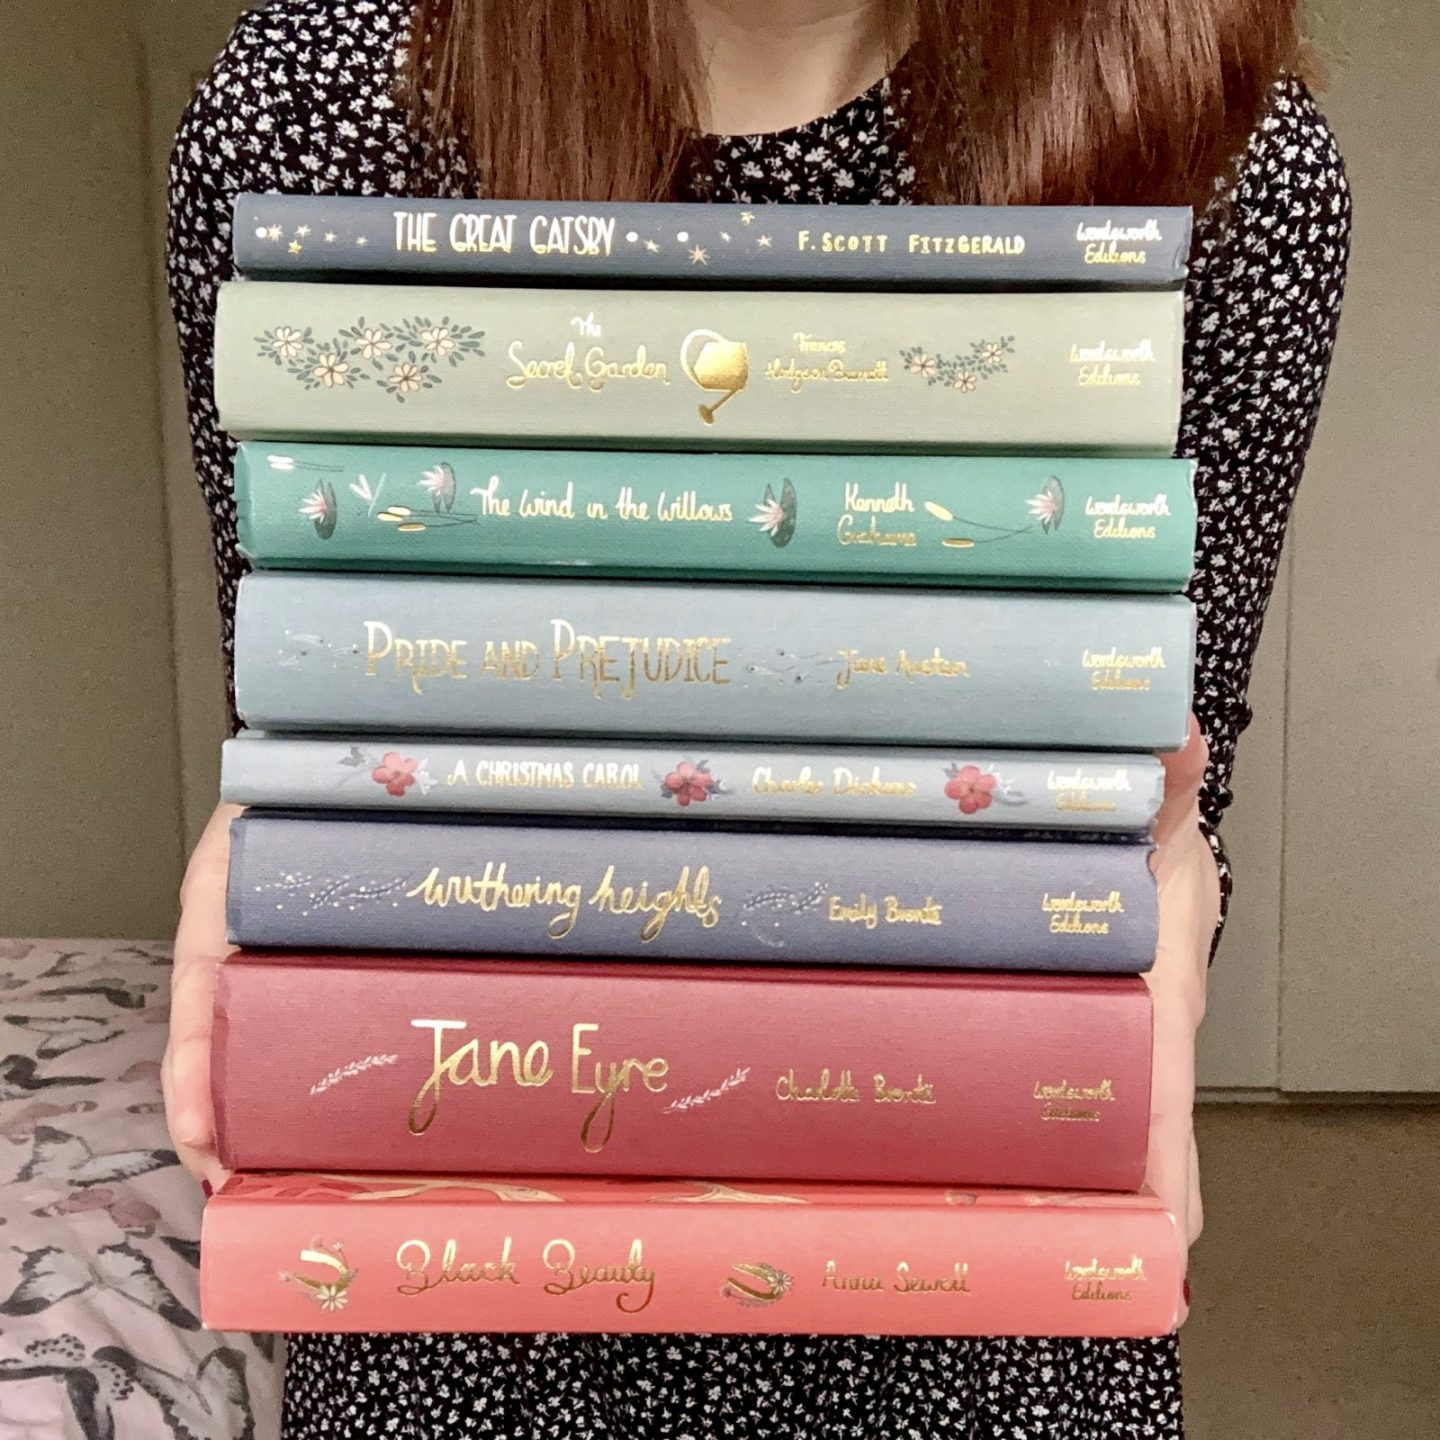 Pippa stood up holding pile of books. Pippa is wearing long-sleeved navy blue dress with tiny white spots, with brown hair down. Books are all classics from Wordsworth Collector's Editions in a rainbow spectrum of pastel colours and titles embroidered in gold. Books top to bottom are The Great Gatsby, The Secret Garden, The Wind In The Willows, Pride and prejudice, a Christmas Carol, withering heights, Jane Eyre, and black beauty.